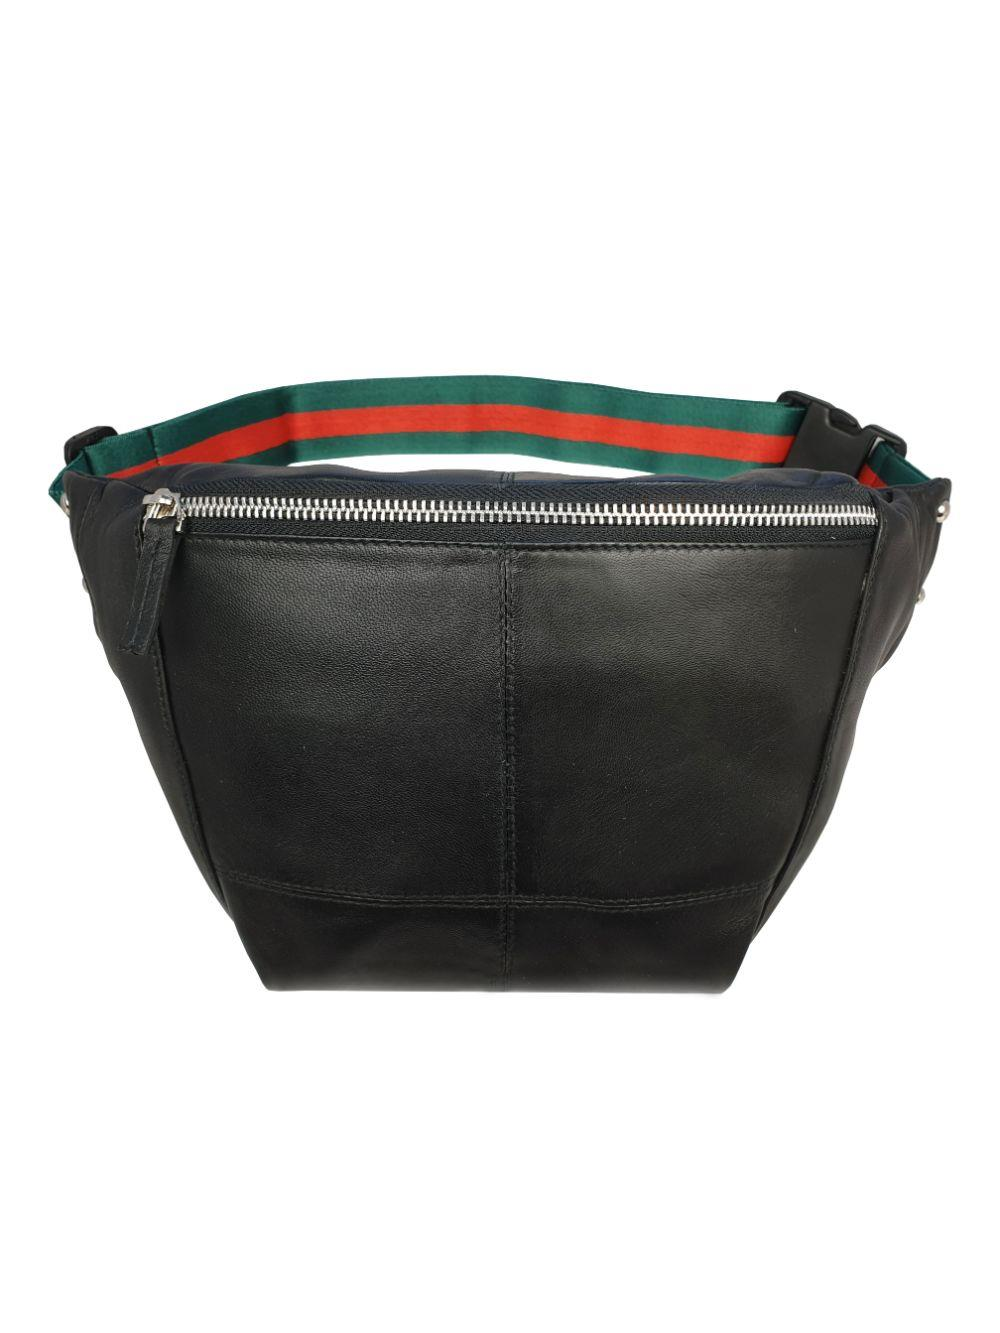 Gucci Style Black Leather Bumbag RL626KGU Front View